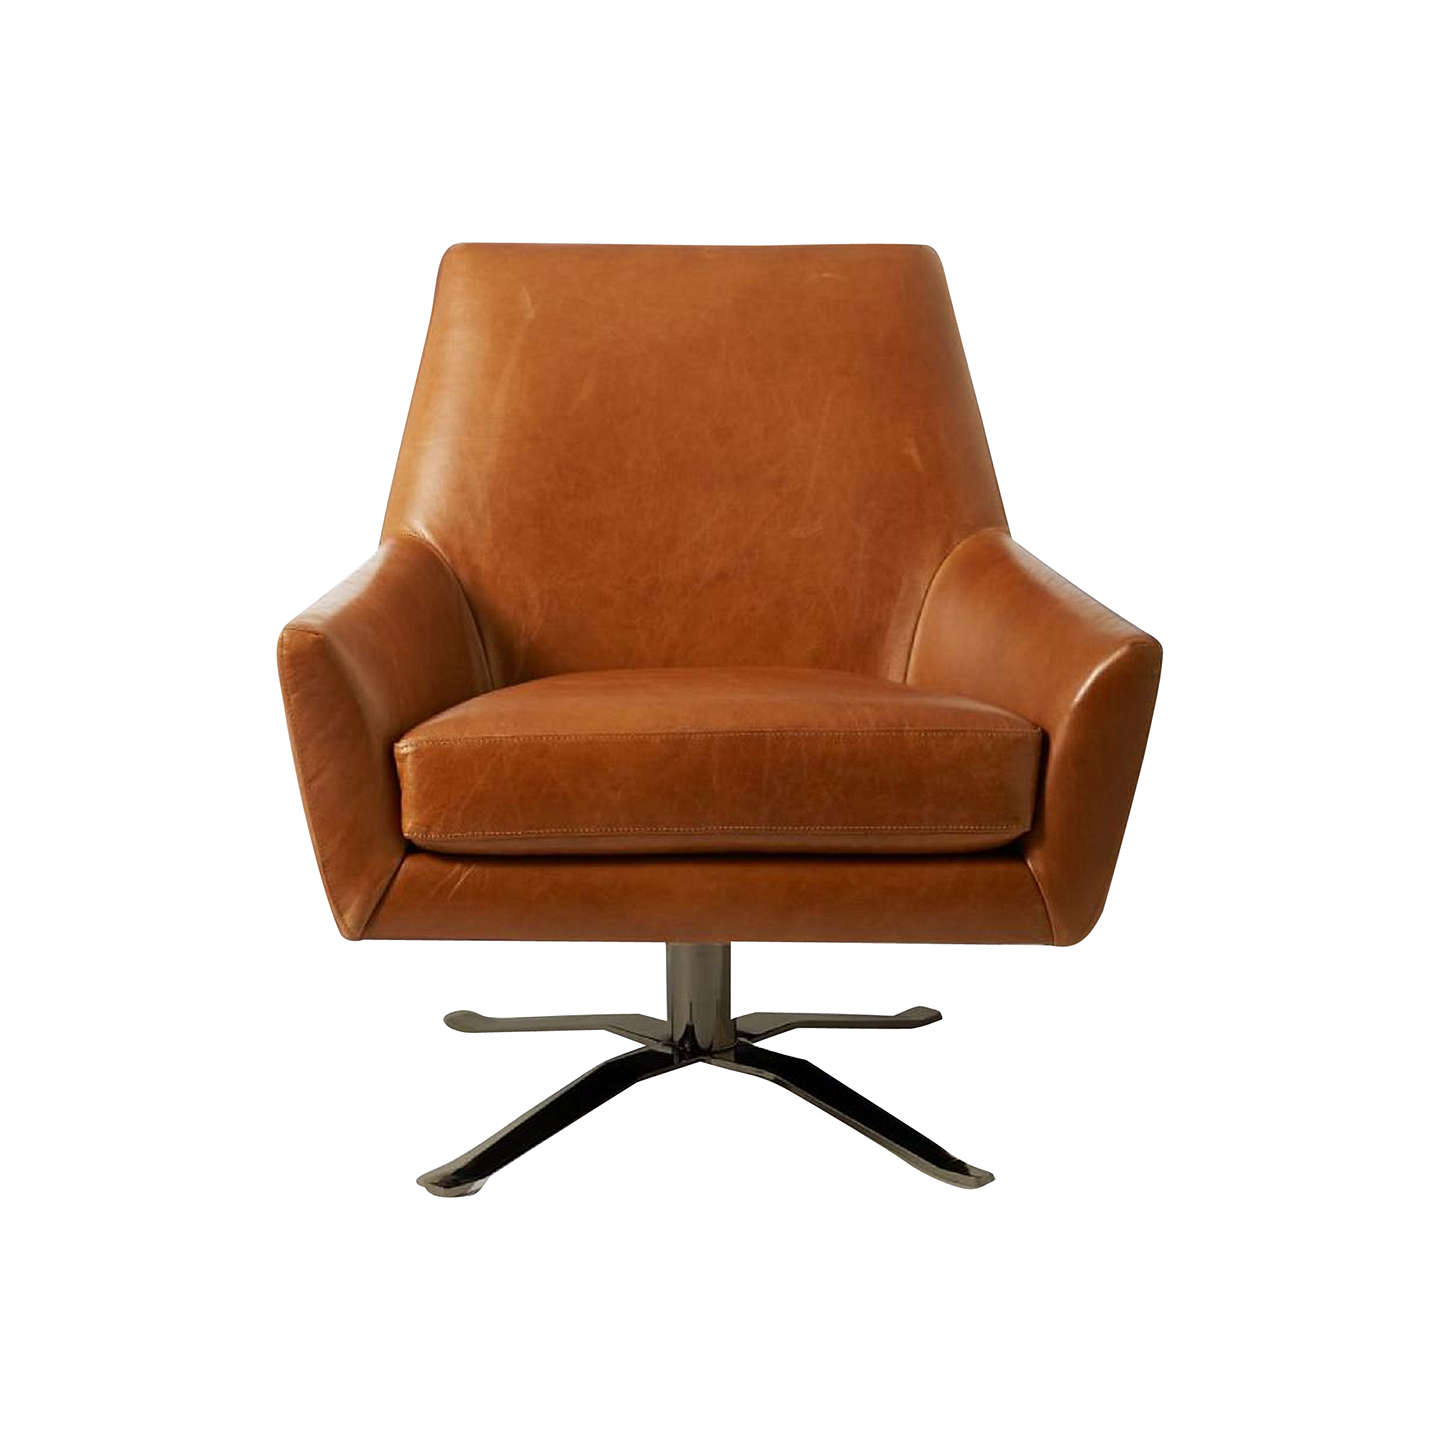 Buywest Elm Lucas Leather Swivel Chair, Saddle Leather Bronze Online At  Johnlewis.com ...